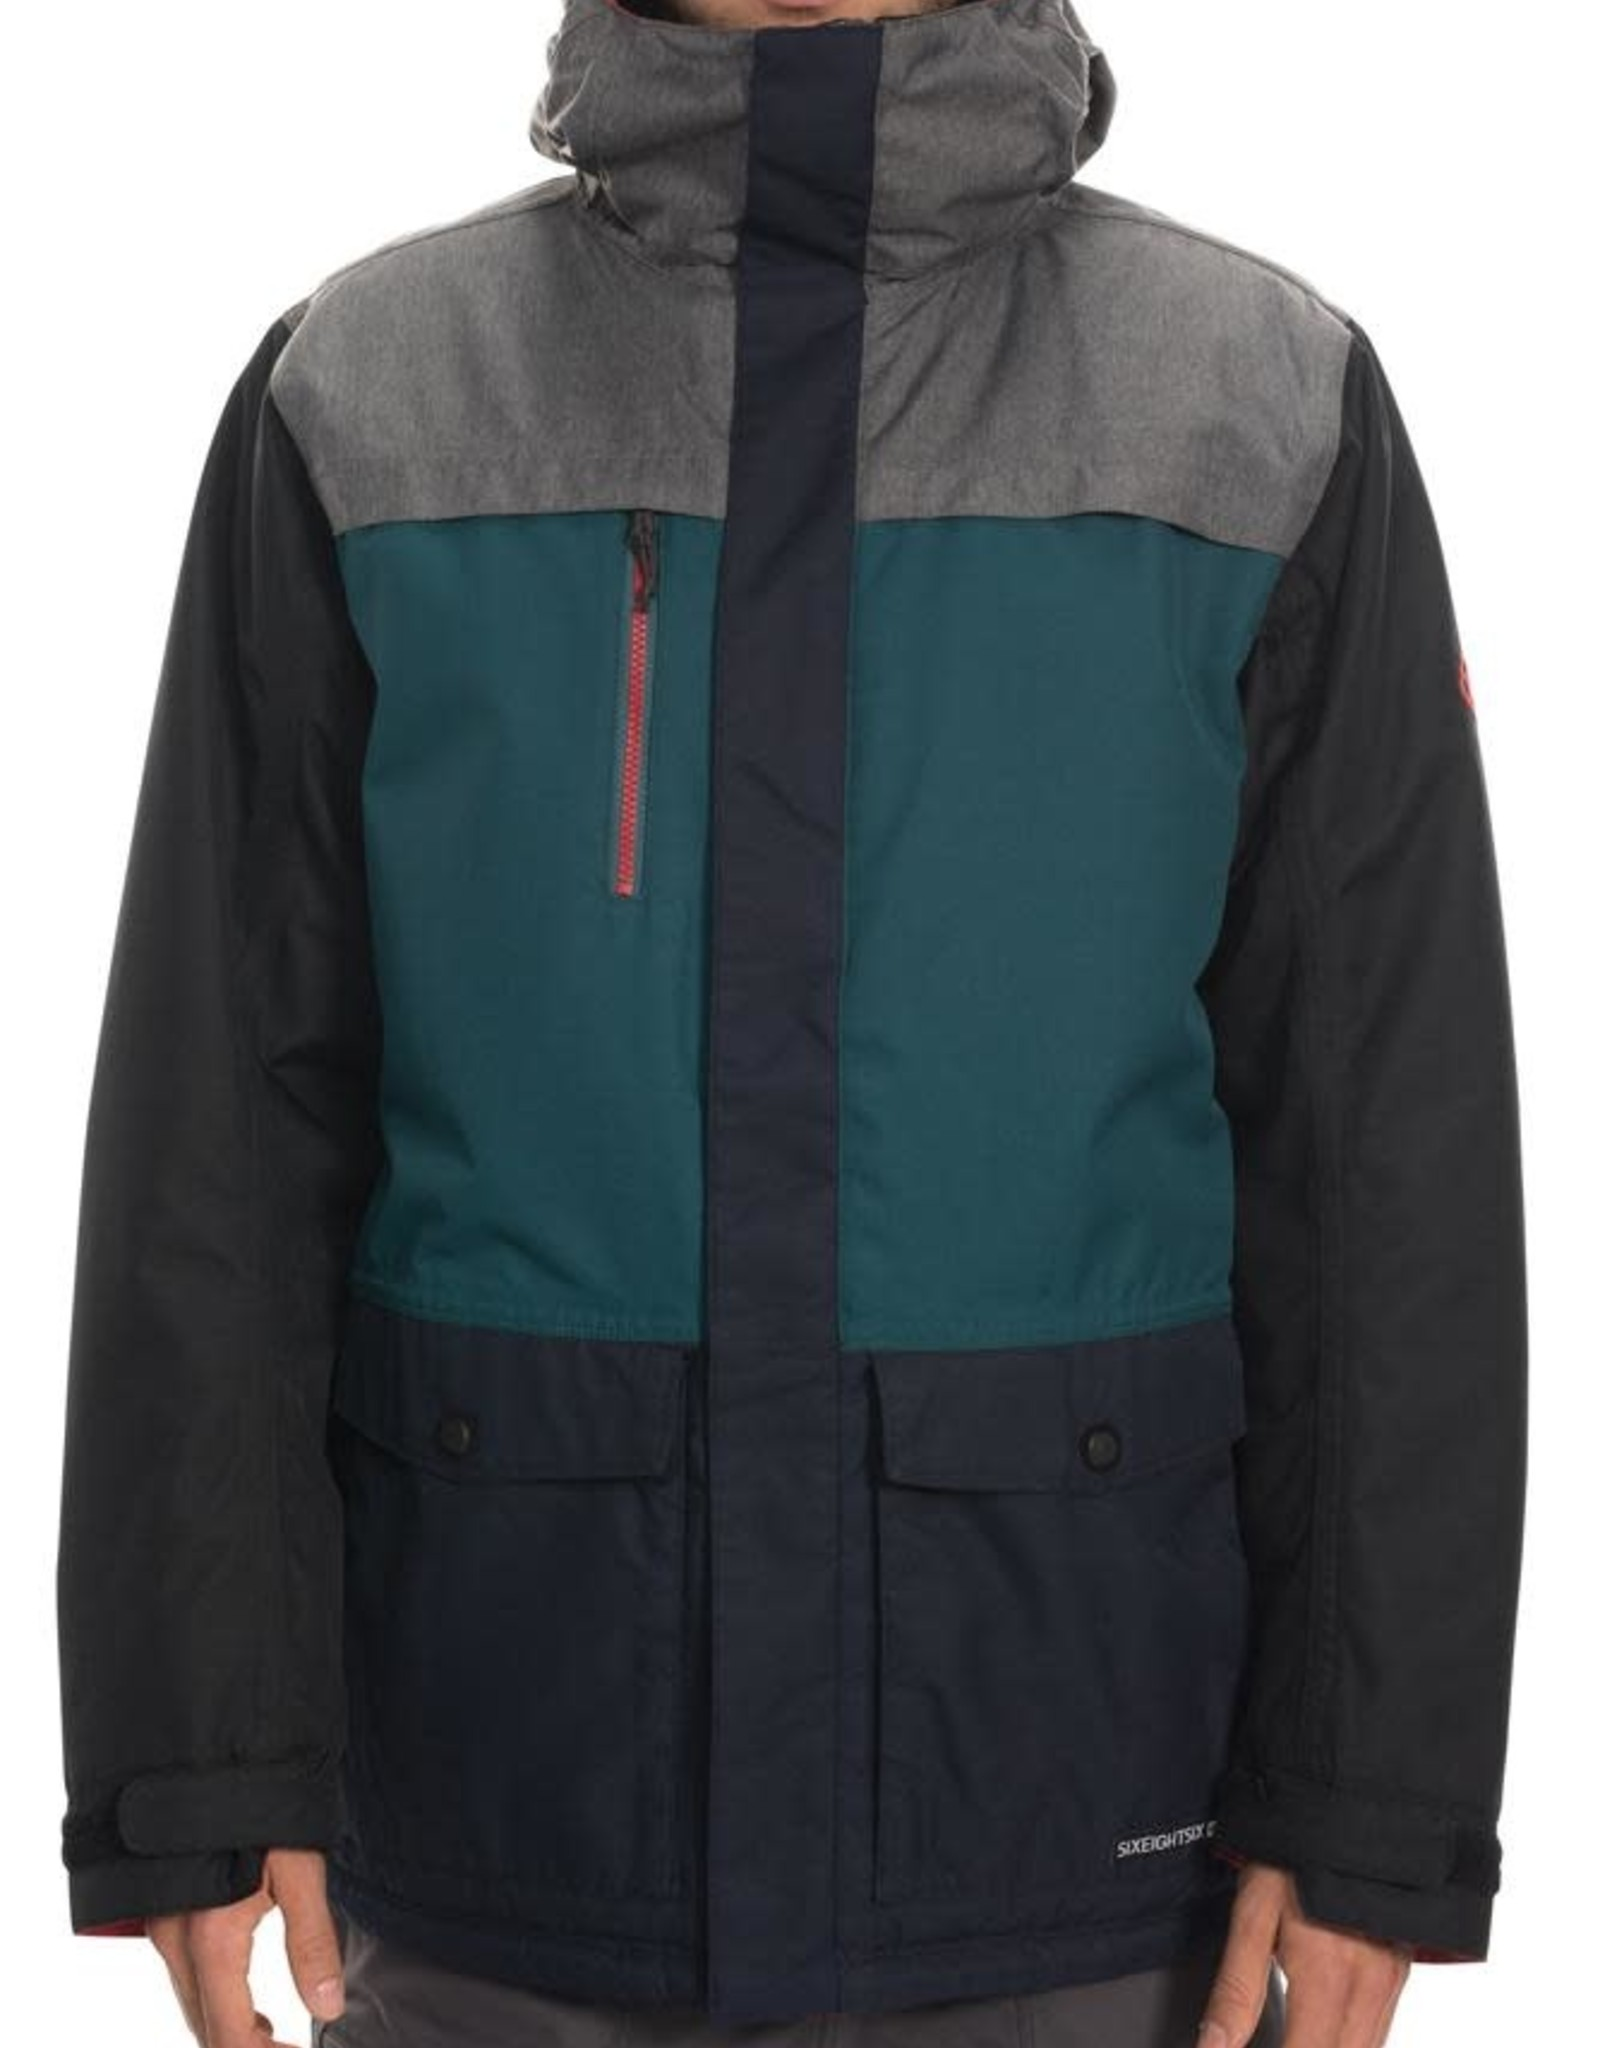 686 MNS ANTHEM INSULATED JACKET